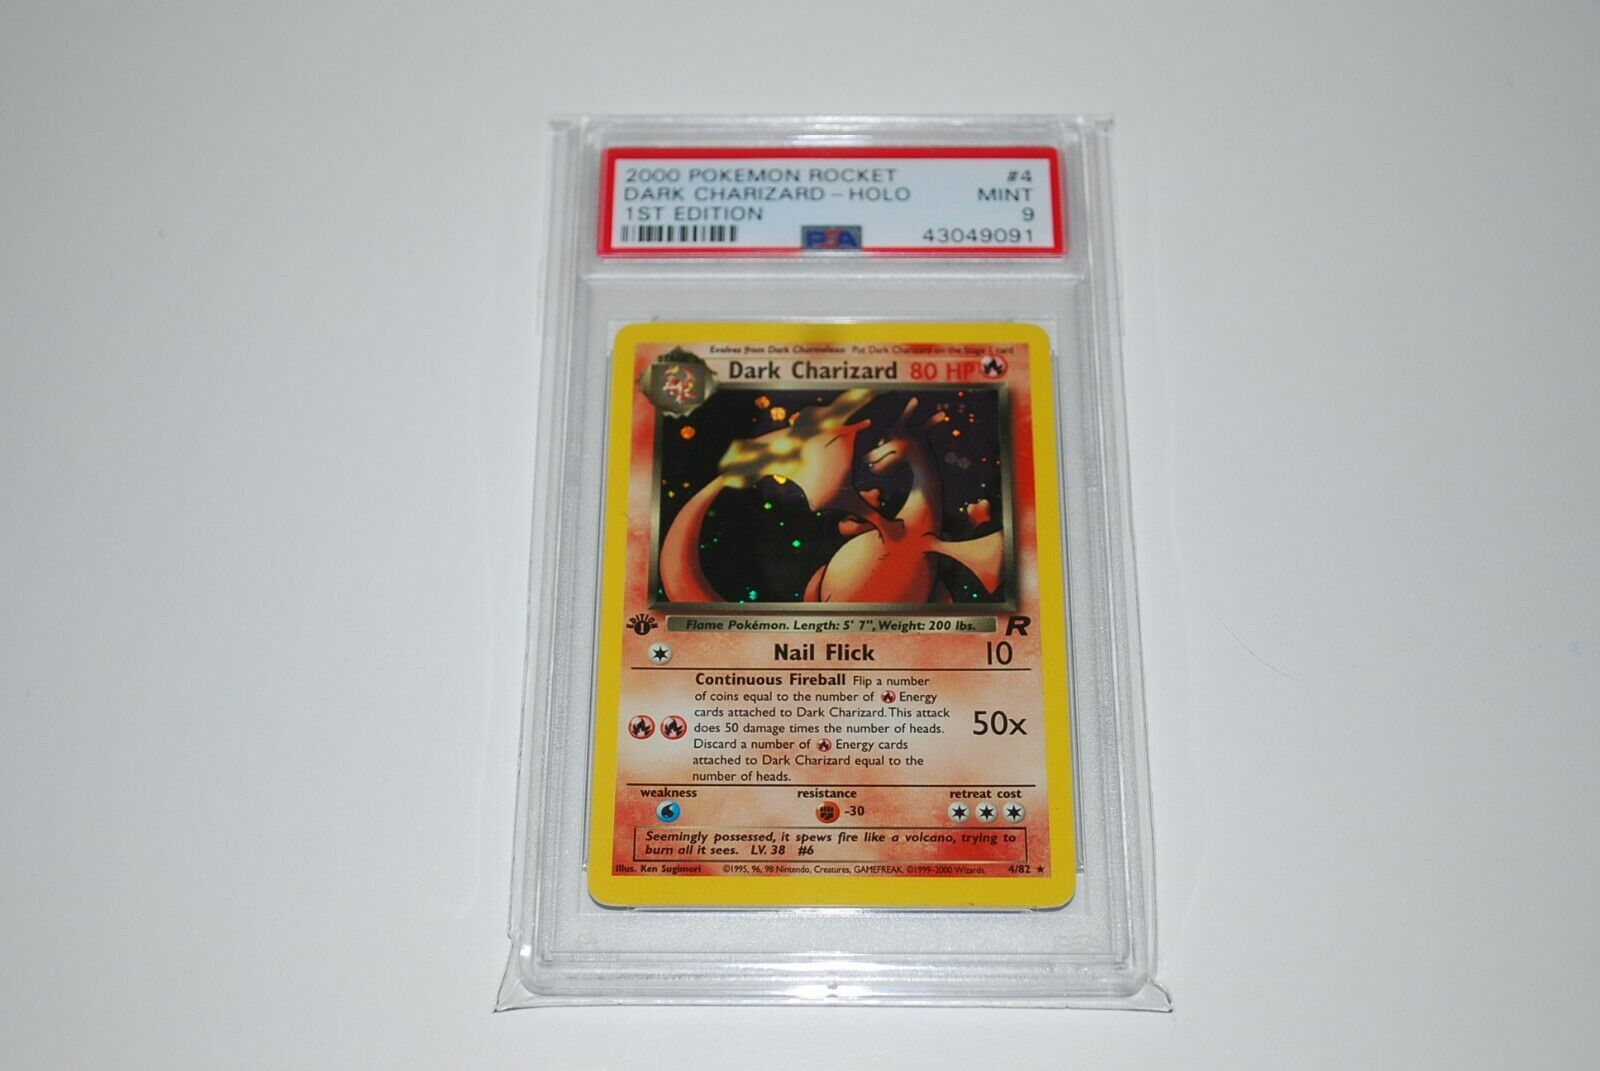 PSA 9 Mint 1st Edition Dark Charizard Holo 482 Pokemon Card 19992000